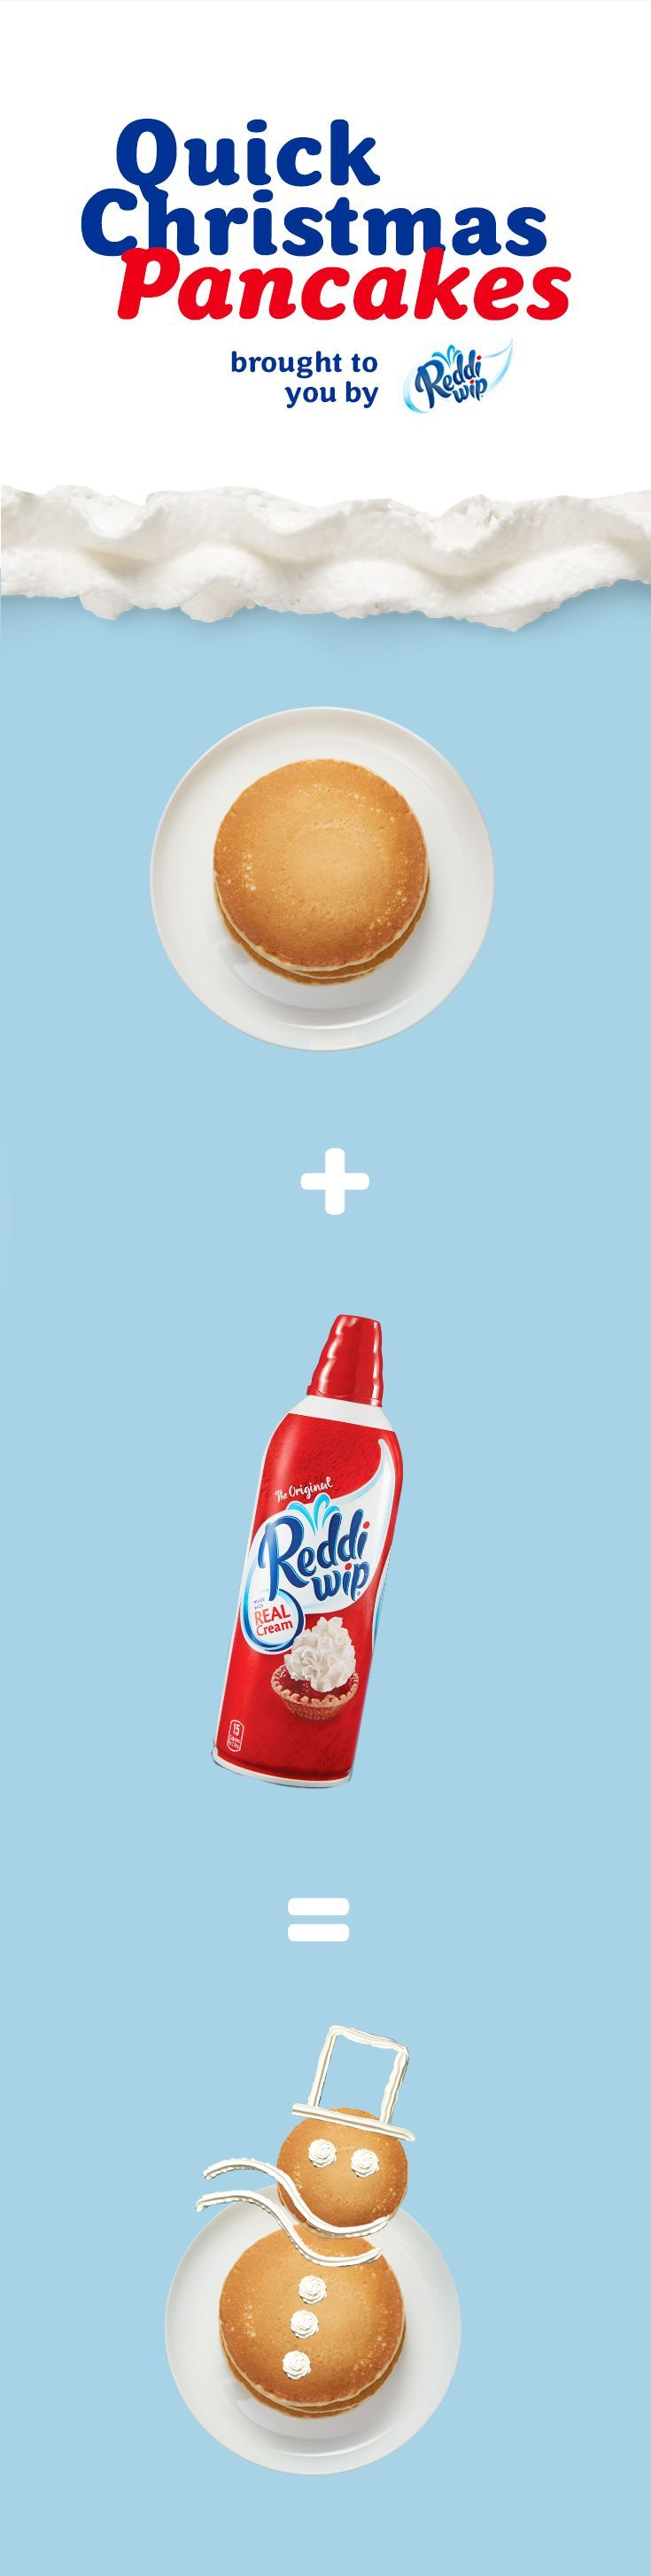 1. Draw a smiley face. 2. Or a snowman. 3. Or maybe an emoji. 4. No matter what you make of it, Reddi-wip makes breakfast instantly great. But if you still want to put pancake batter in a squeeze bottle, we're not going to stop you. #christmasrecipe #swee